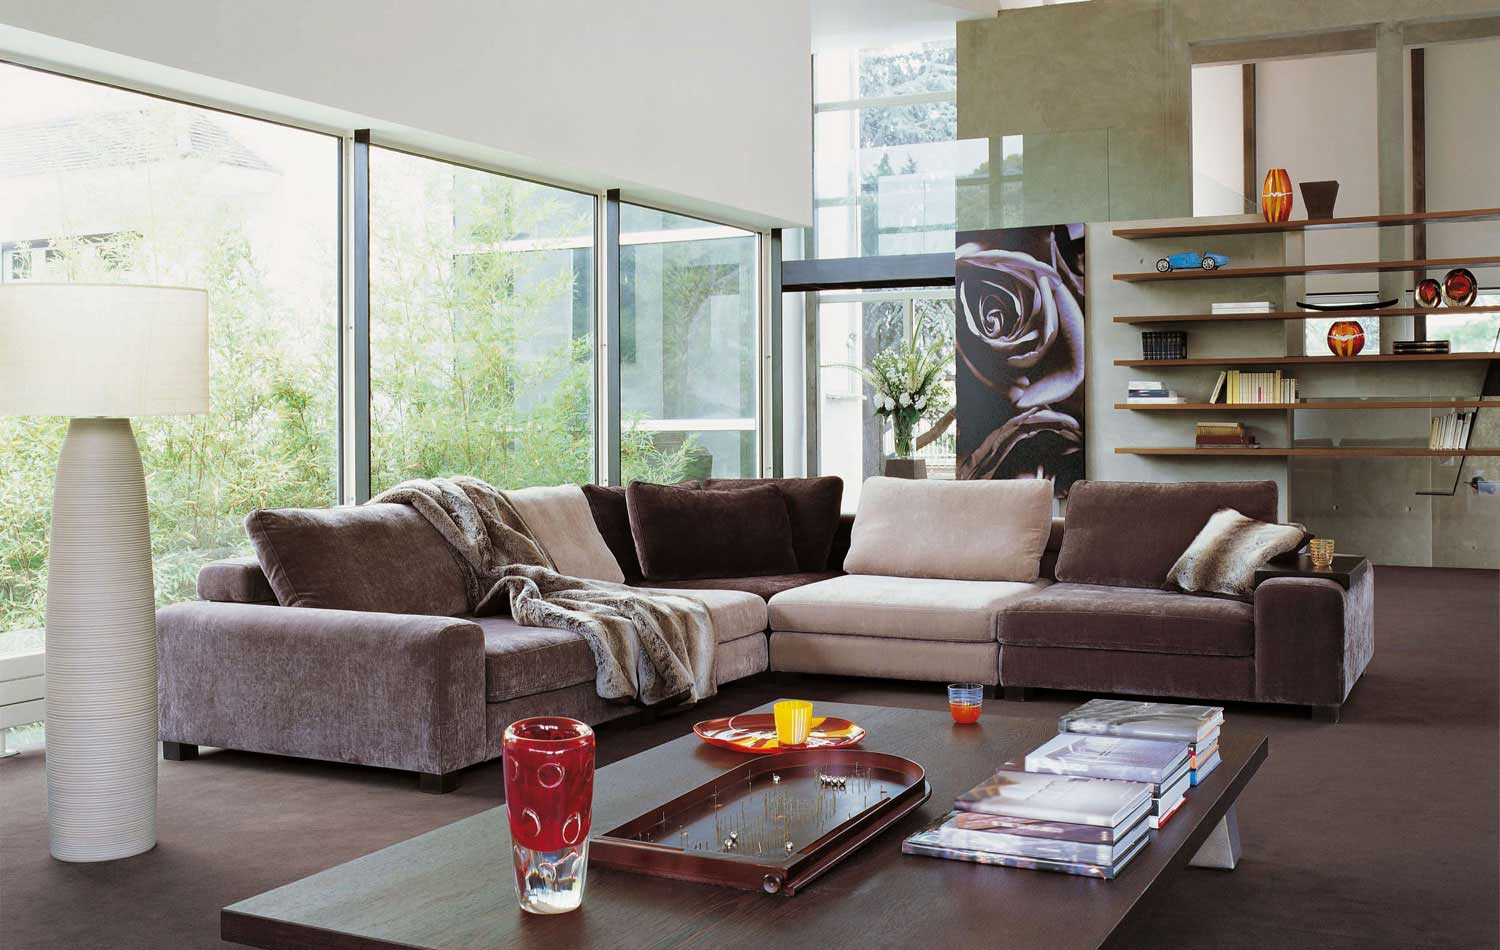 Living Room Inspiration 120 Modern Sofas by Roche Bobois Part 33  Architecture  Design